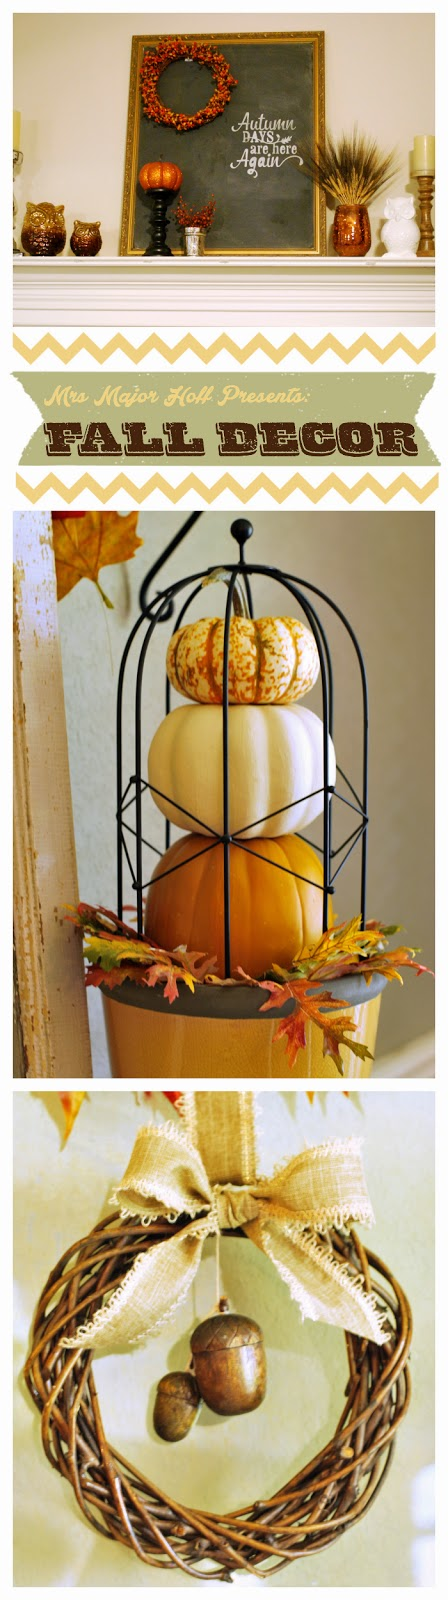 Bring Fall Decor into any home.